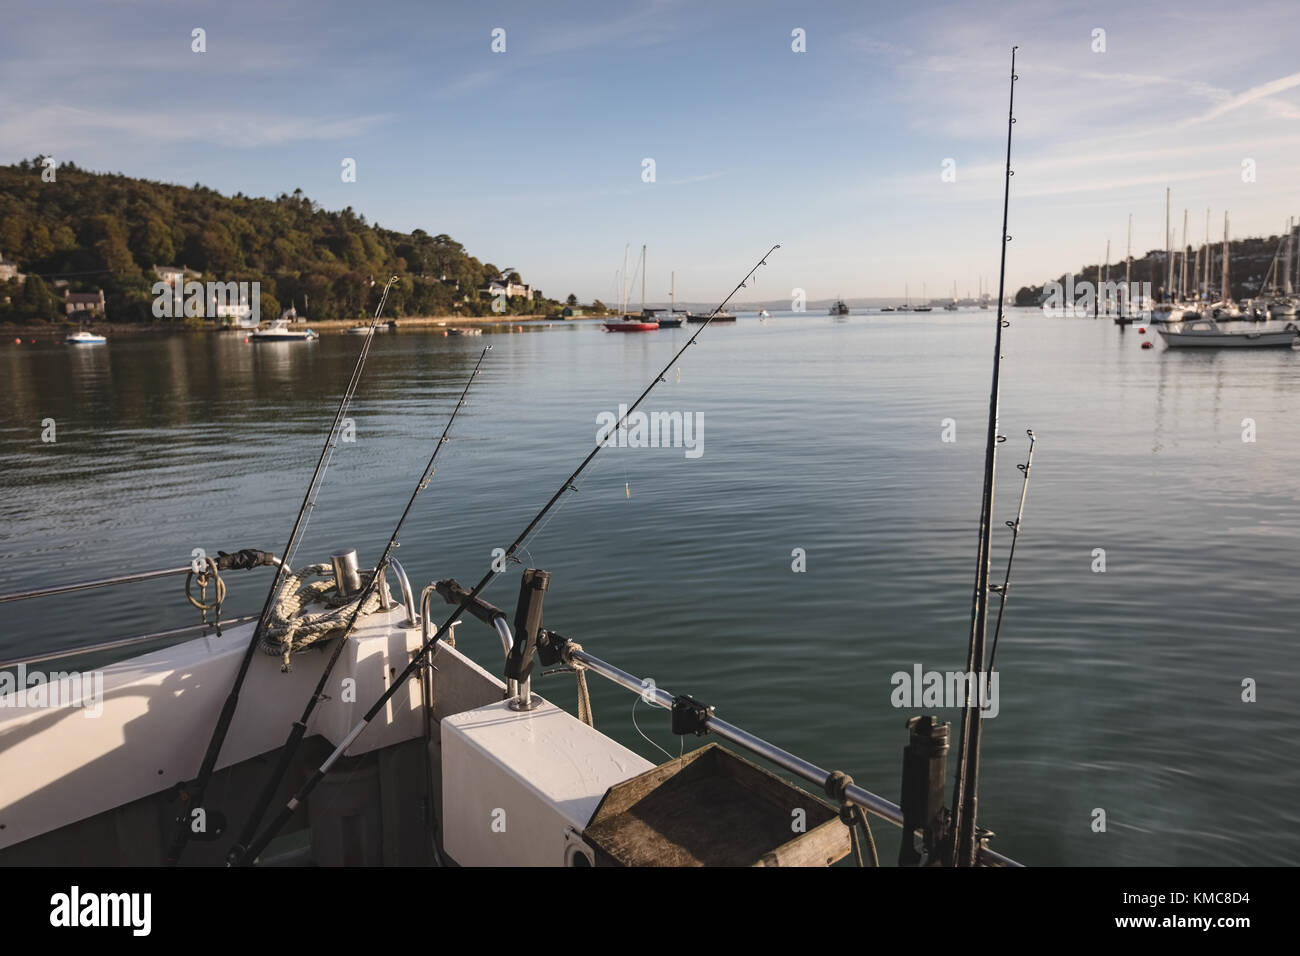 Fishing deck stock photos fishing deck stock images alamy for Fishing deck boats